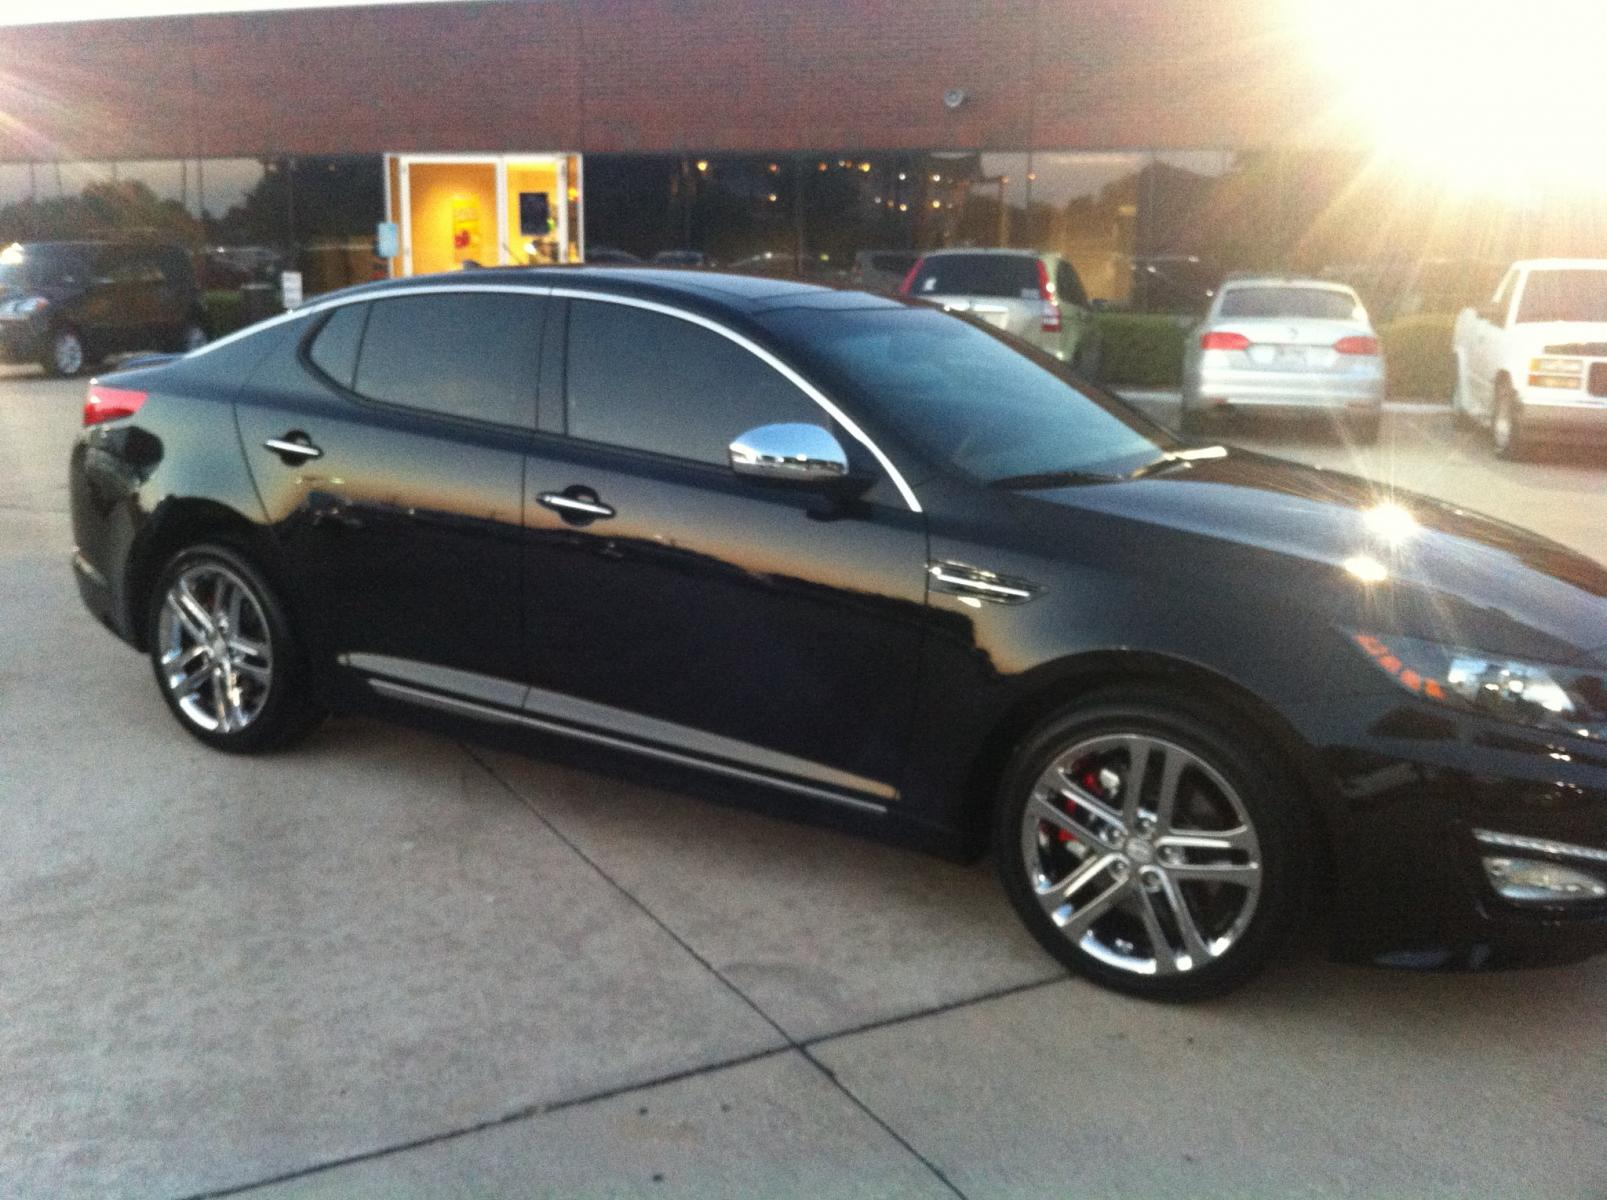 Kia Optima 2013 Black 2013 Kia Optima SX w Chrome